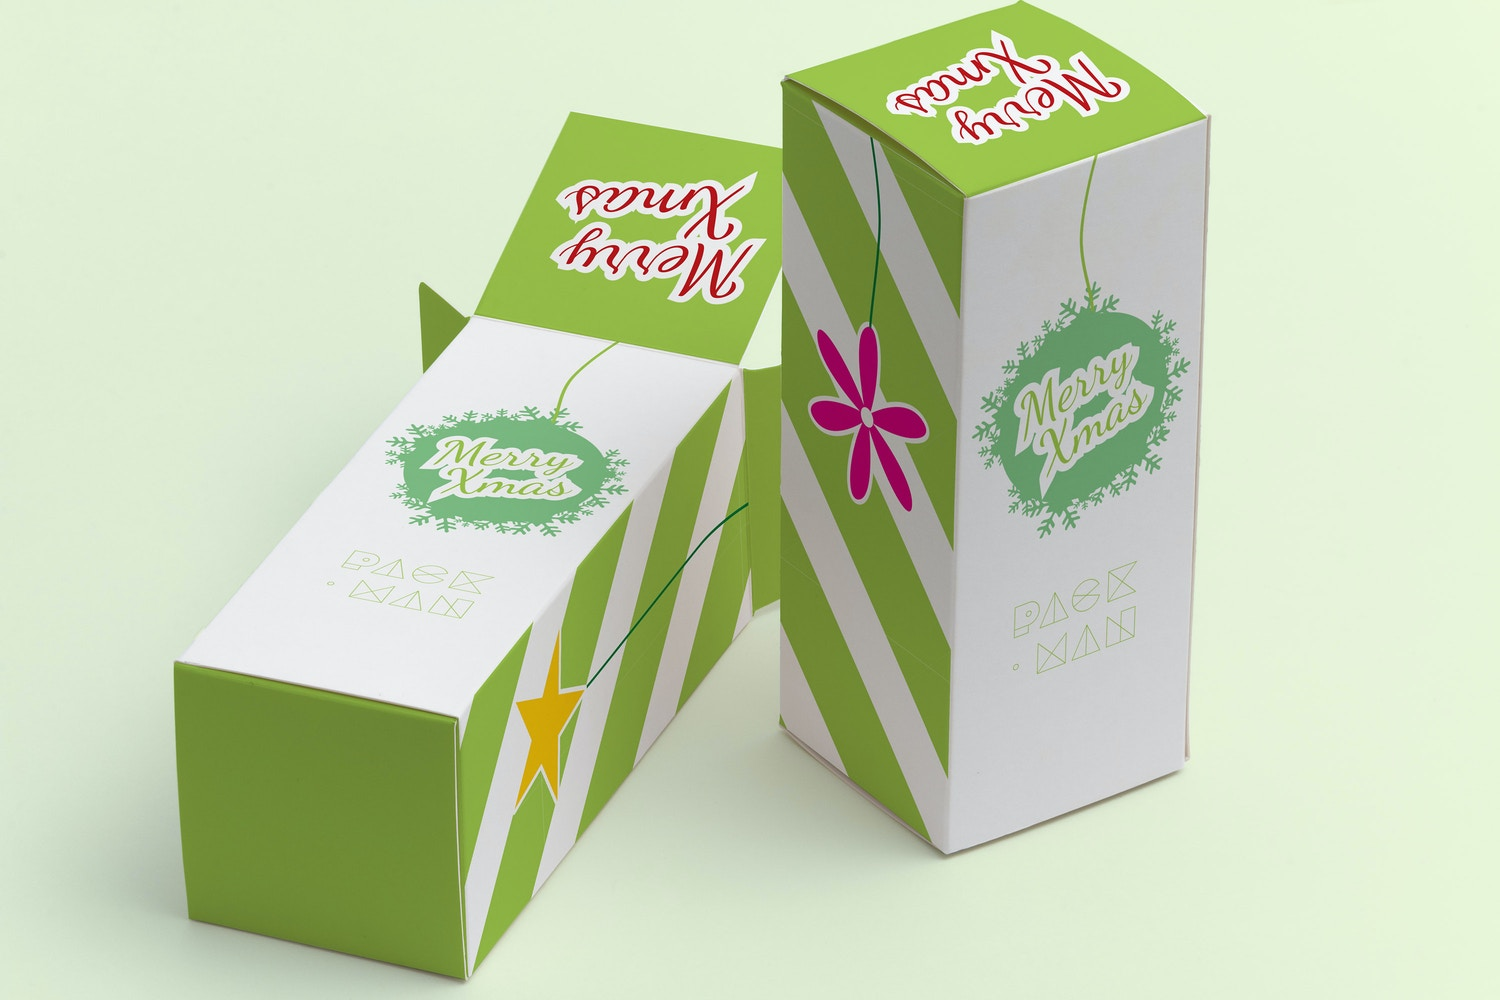 Tall Gift Box Mockup 02 by Ktyellow  on Original Mockups